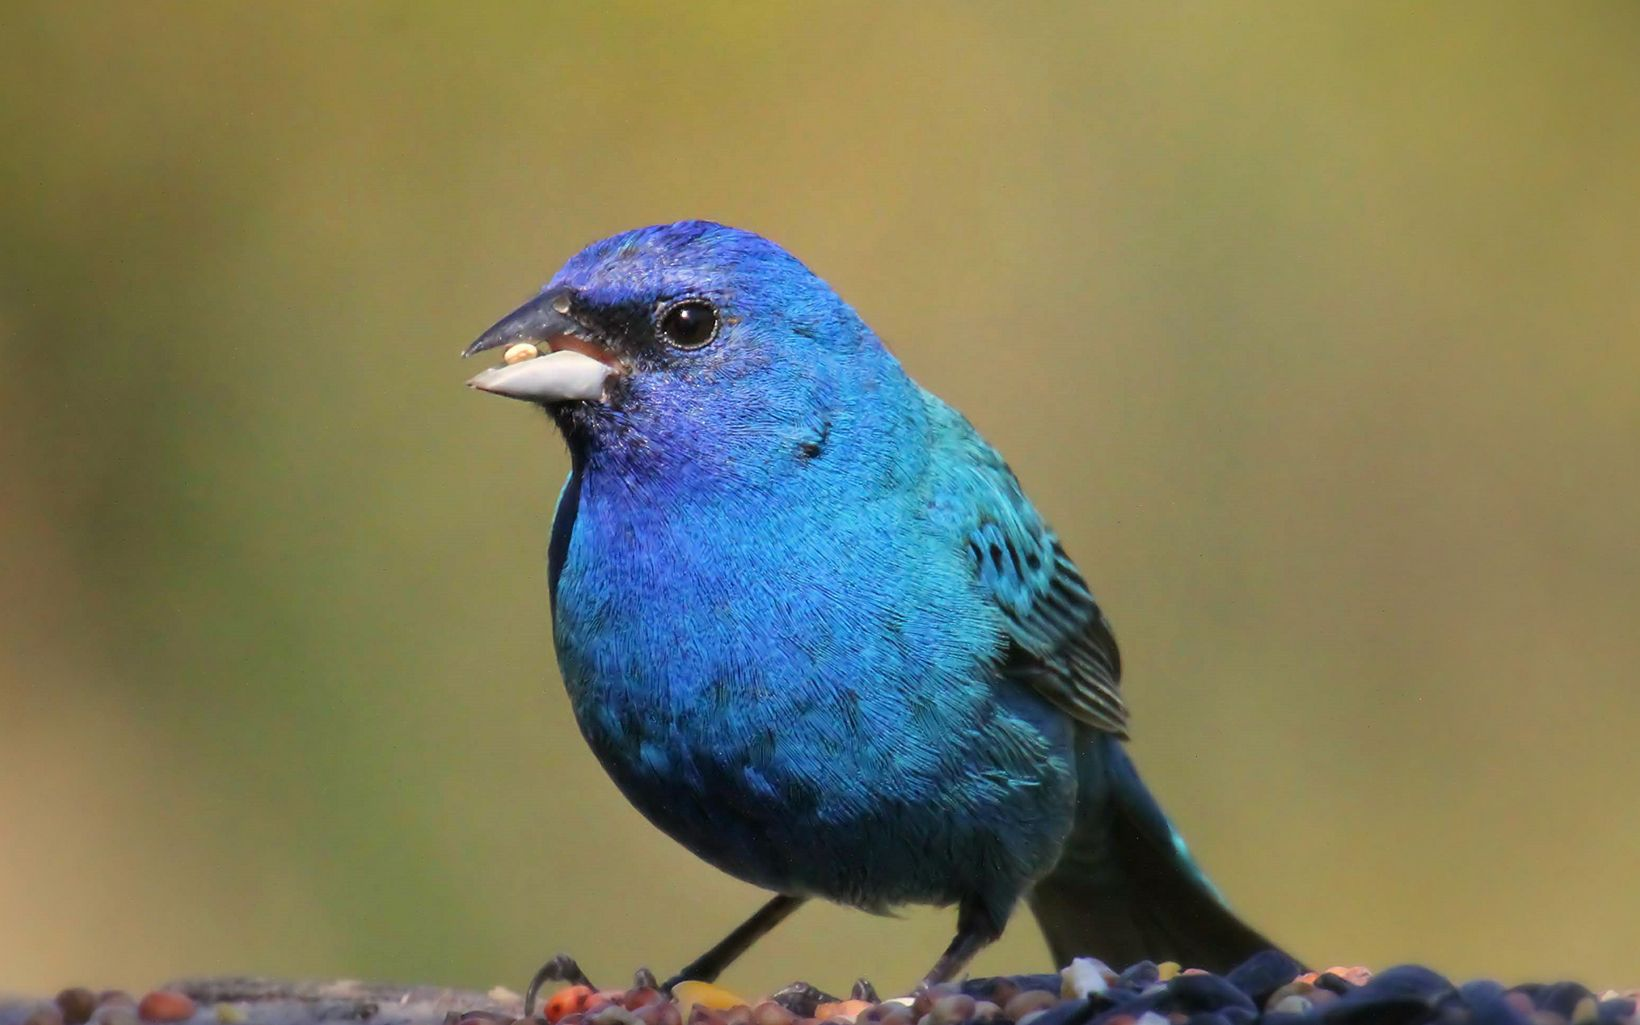 A bright blue bird rests on a branch.